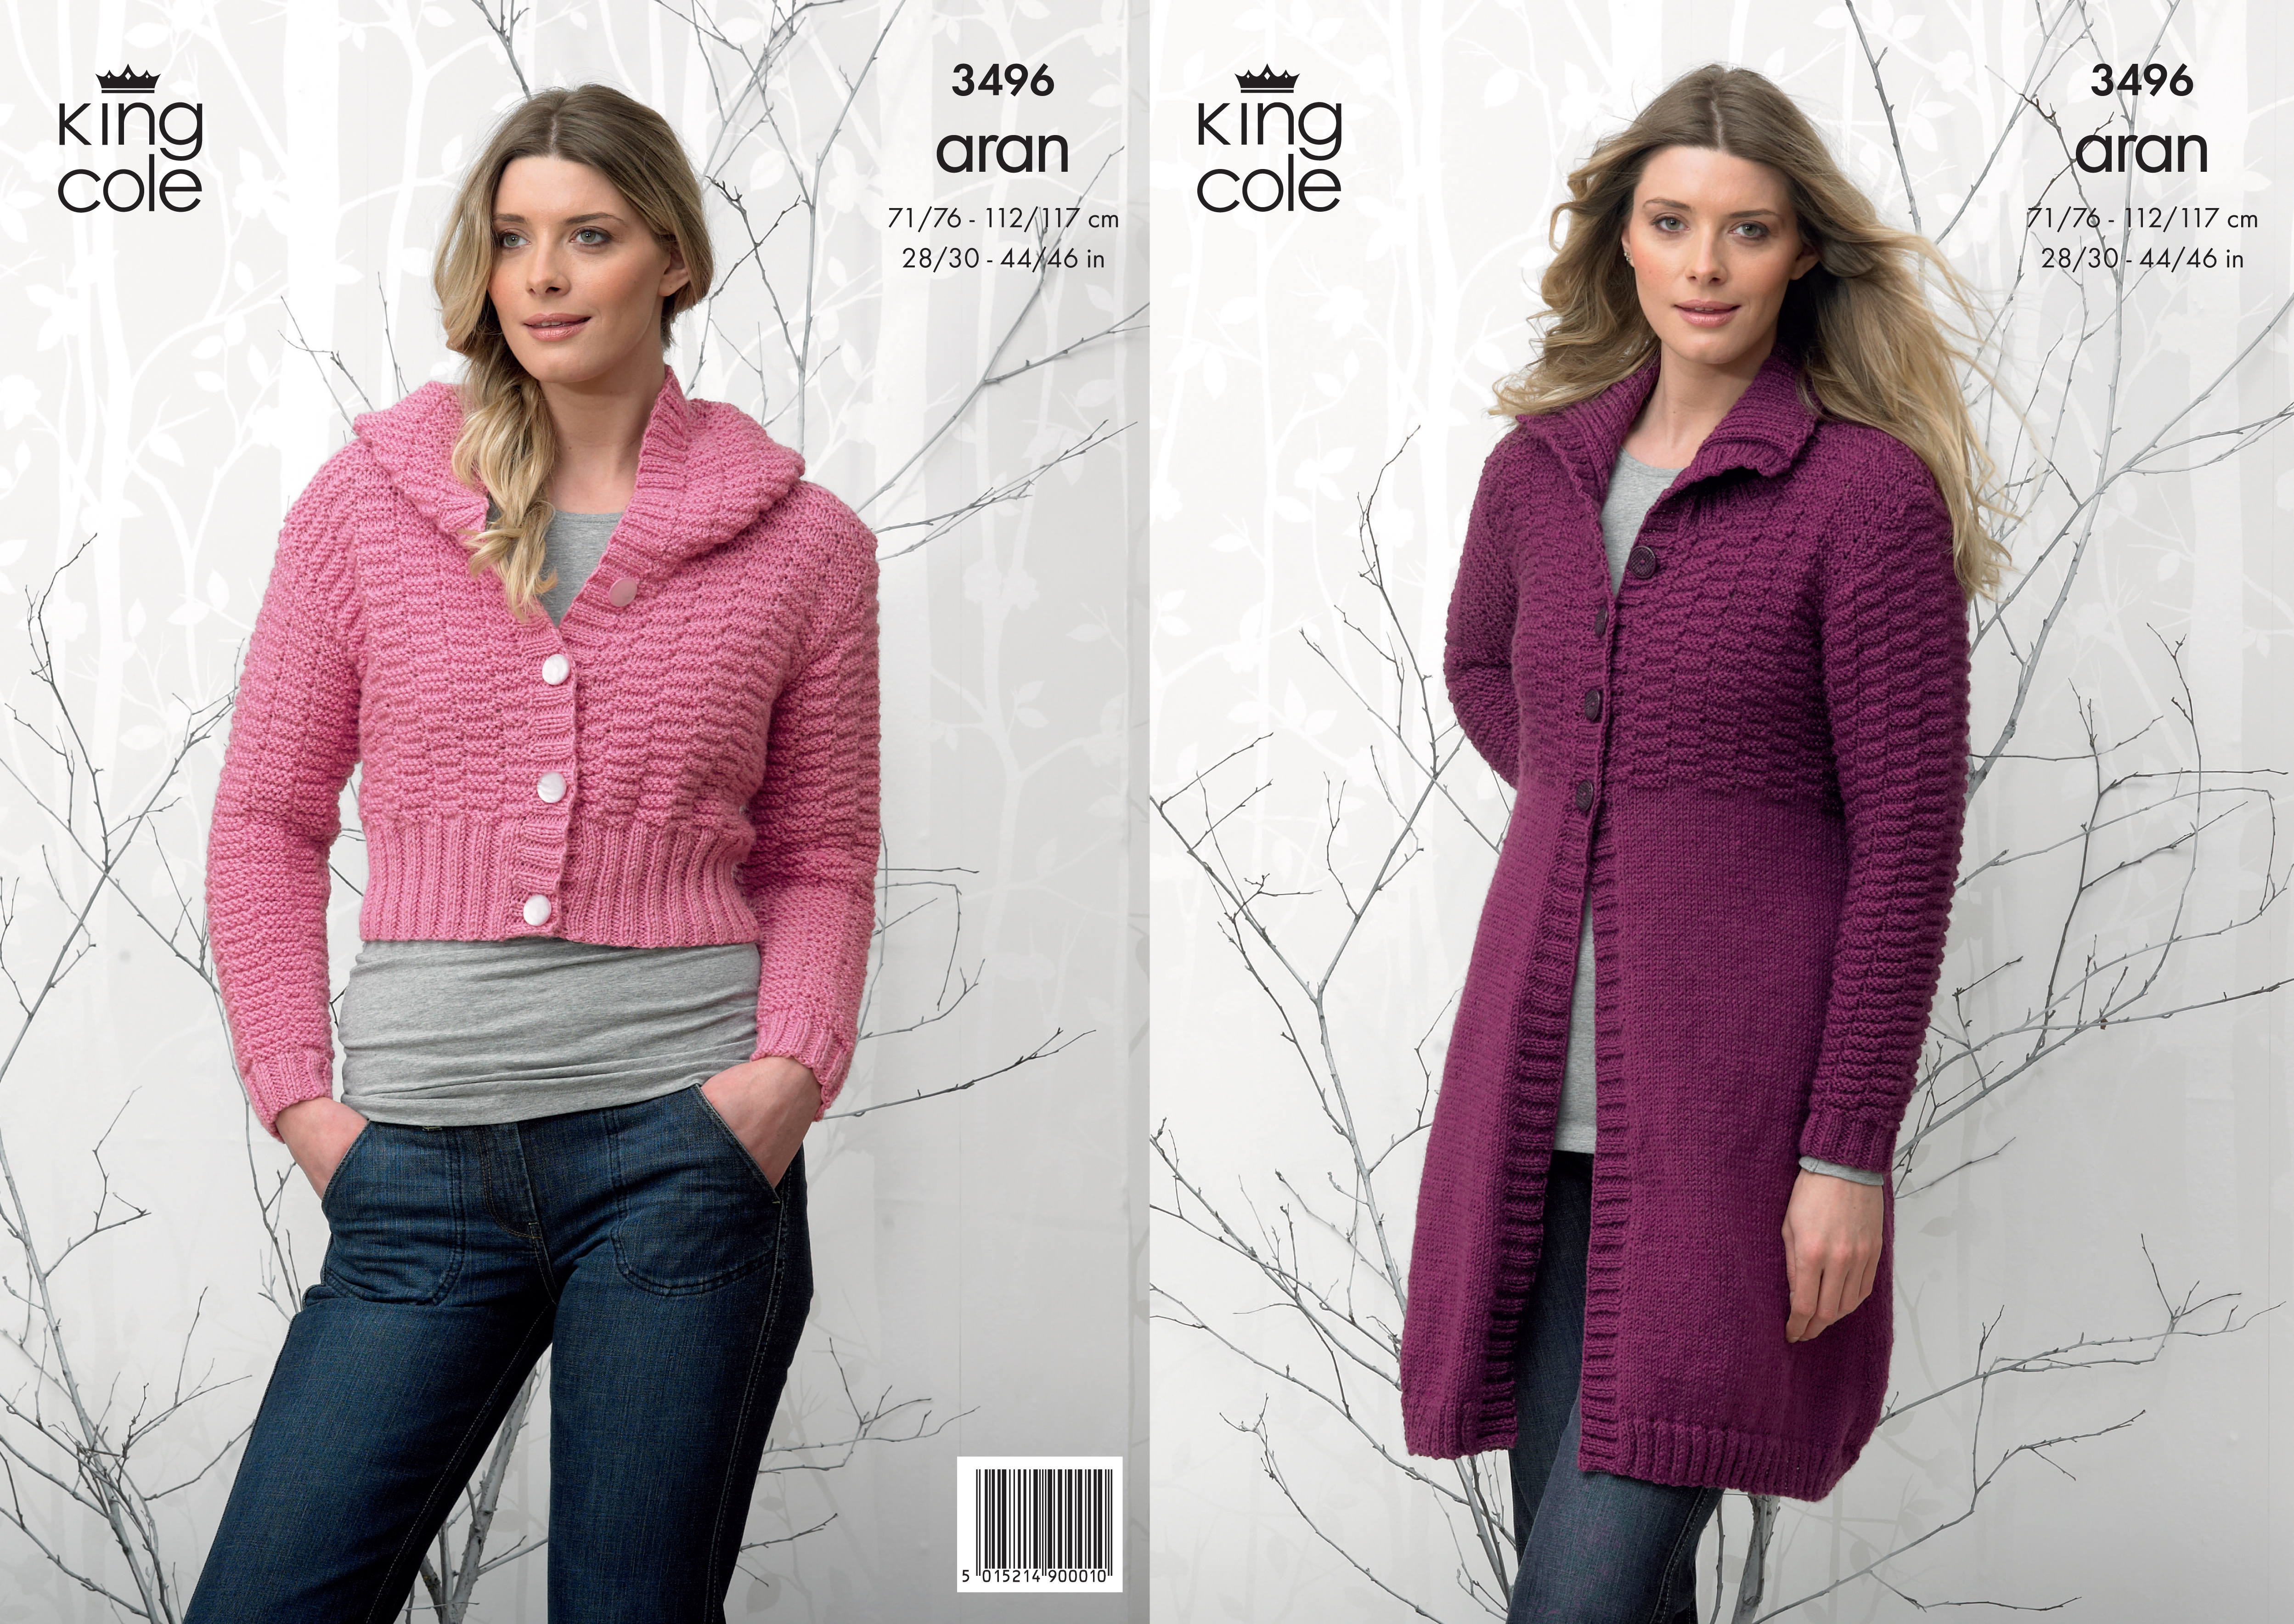 Knitted Coat Patterns Details About Ladies Aran Knitting Pattern Textured Jacket Hooded Cardigan King Cole 3496